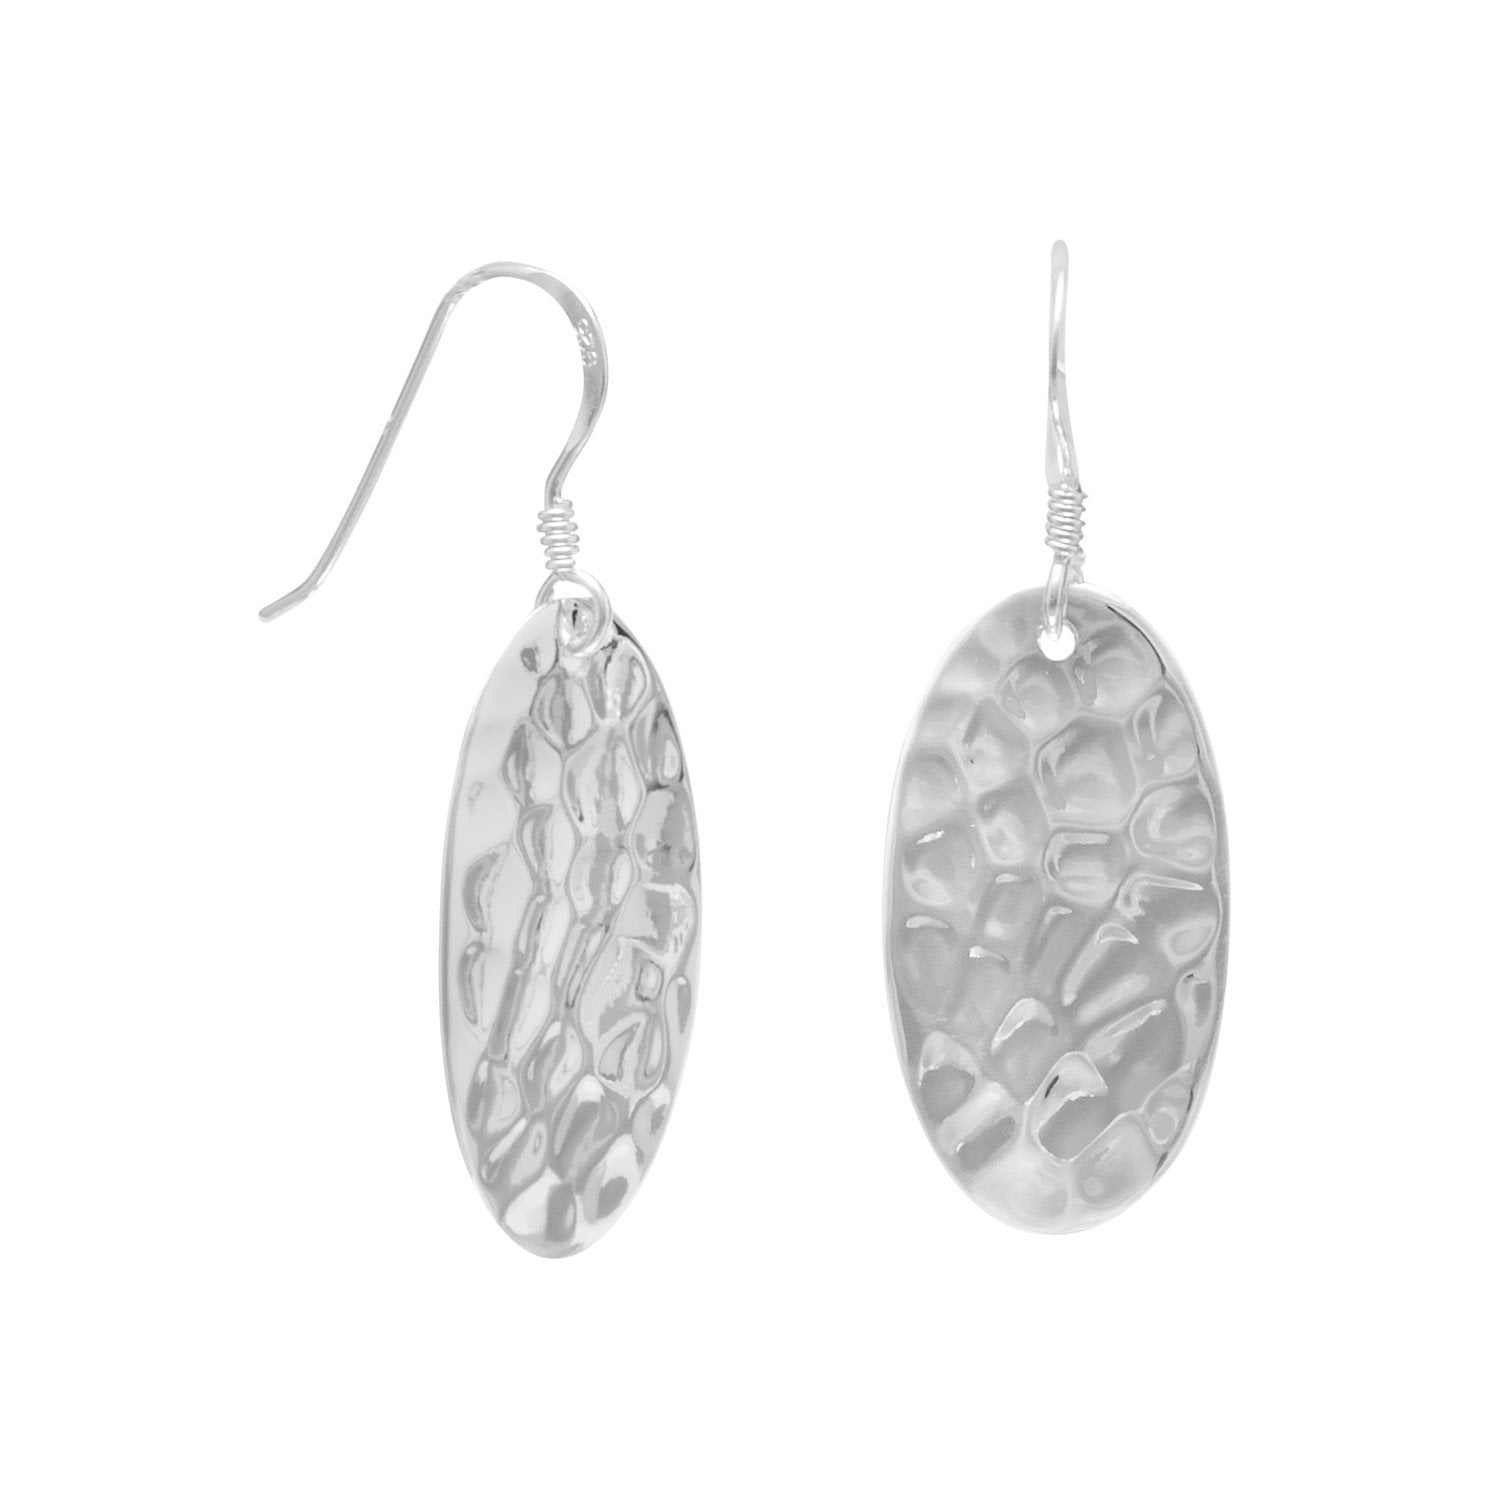 Small Oval Hammered French Wire Earrings - the-southern-magnolia-too